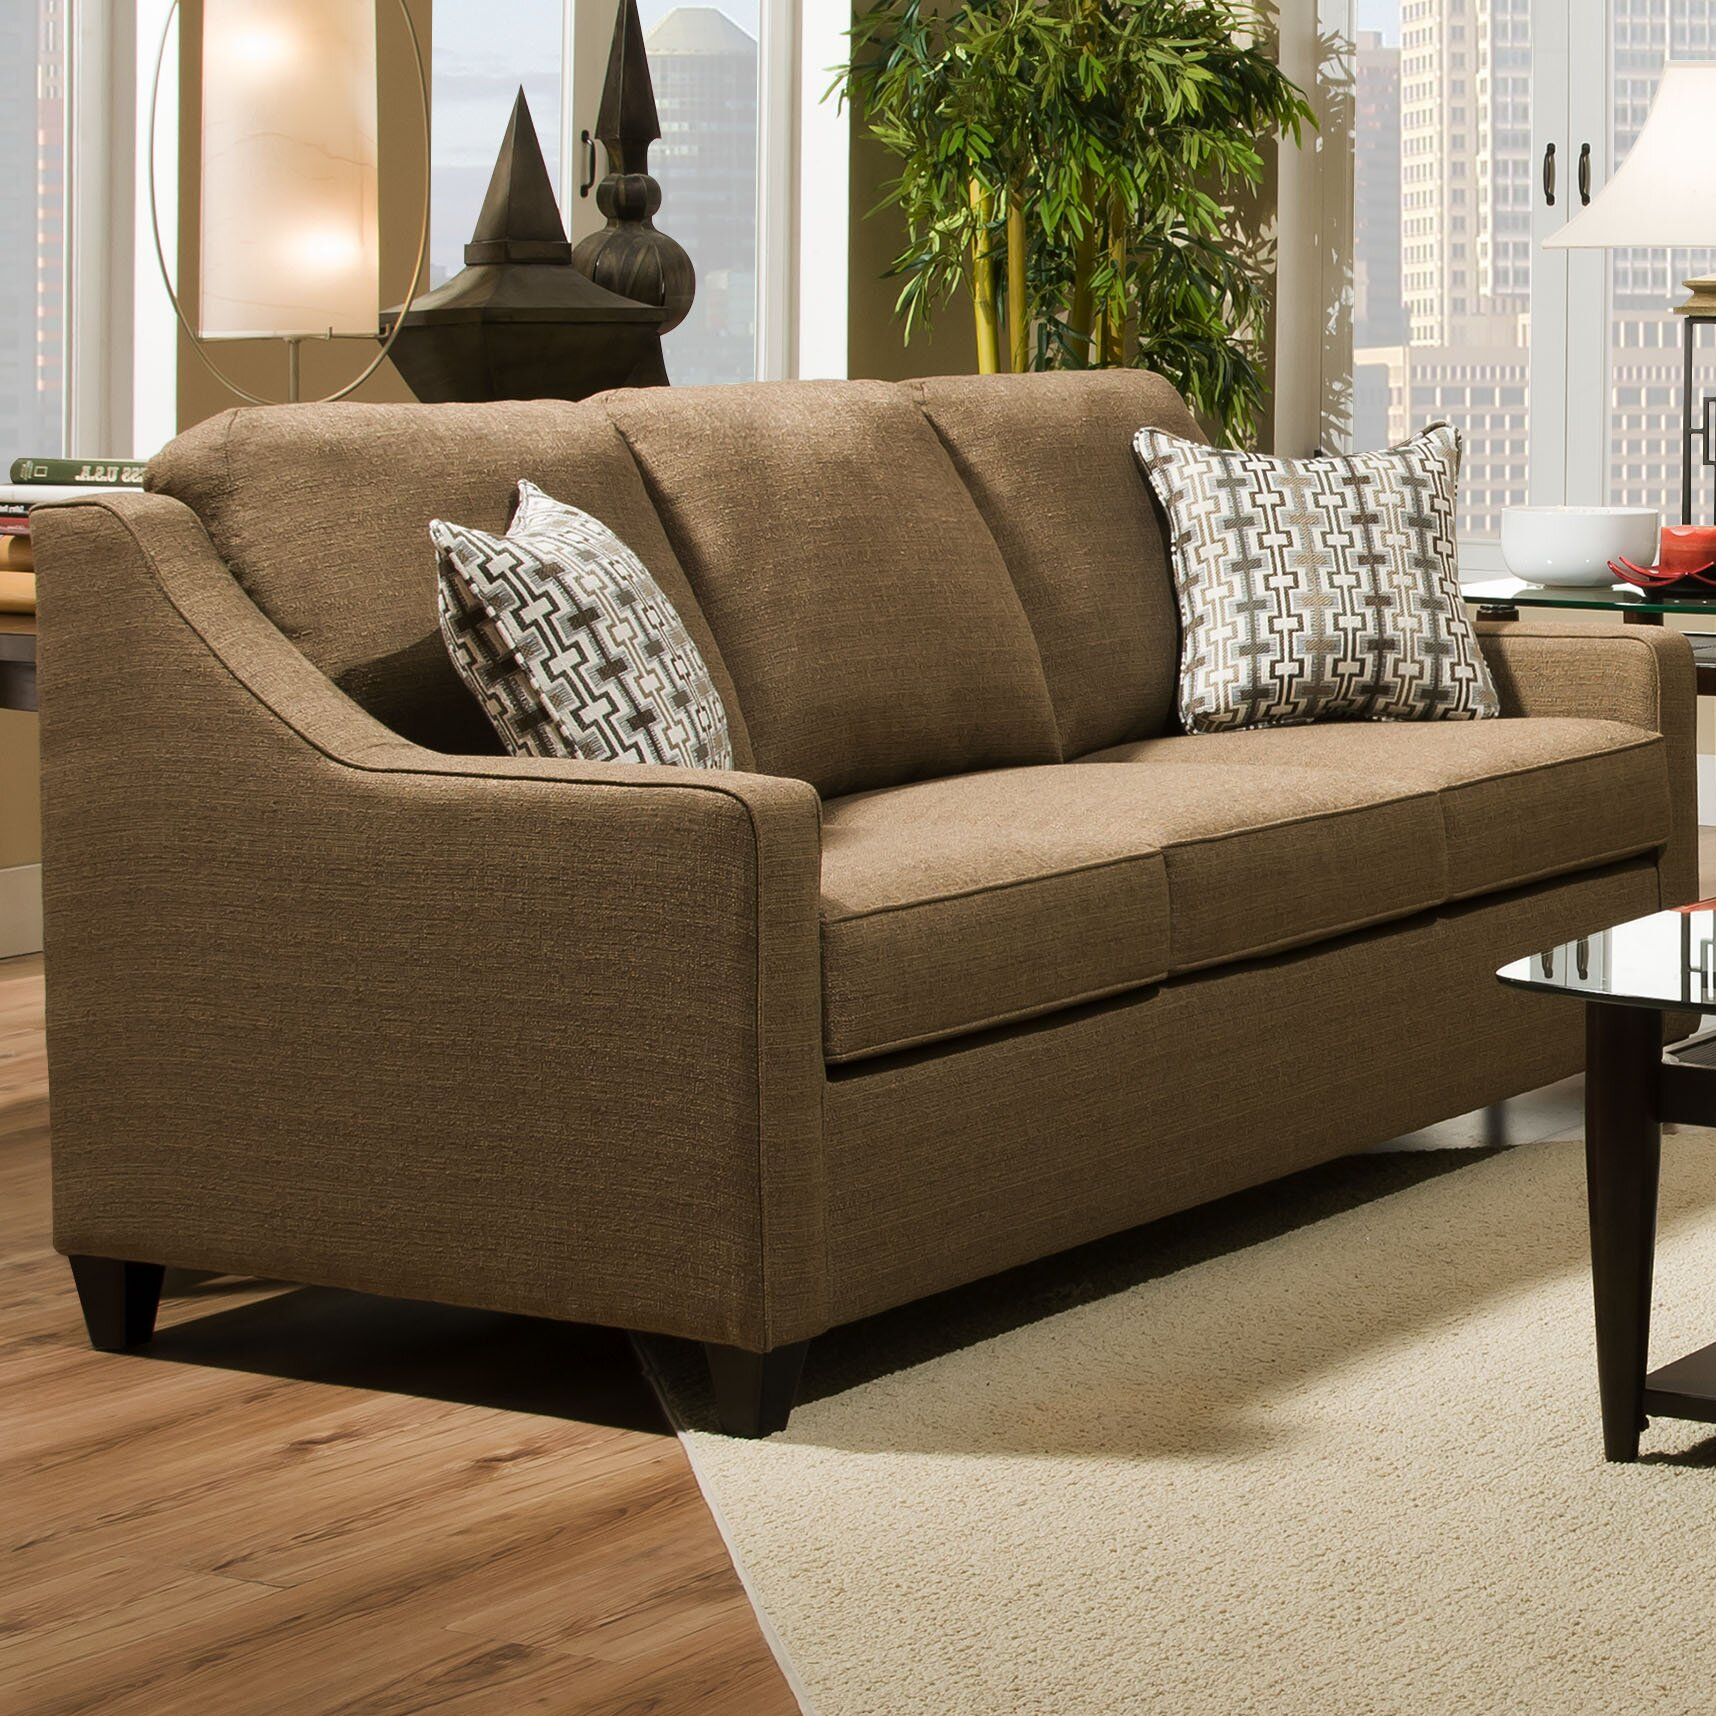 Mover Hide-A-Bed Sleeper Sofa | Wayfair